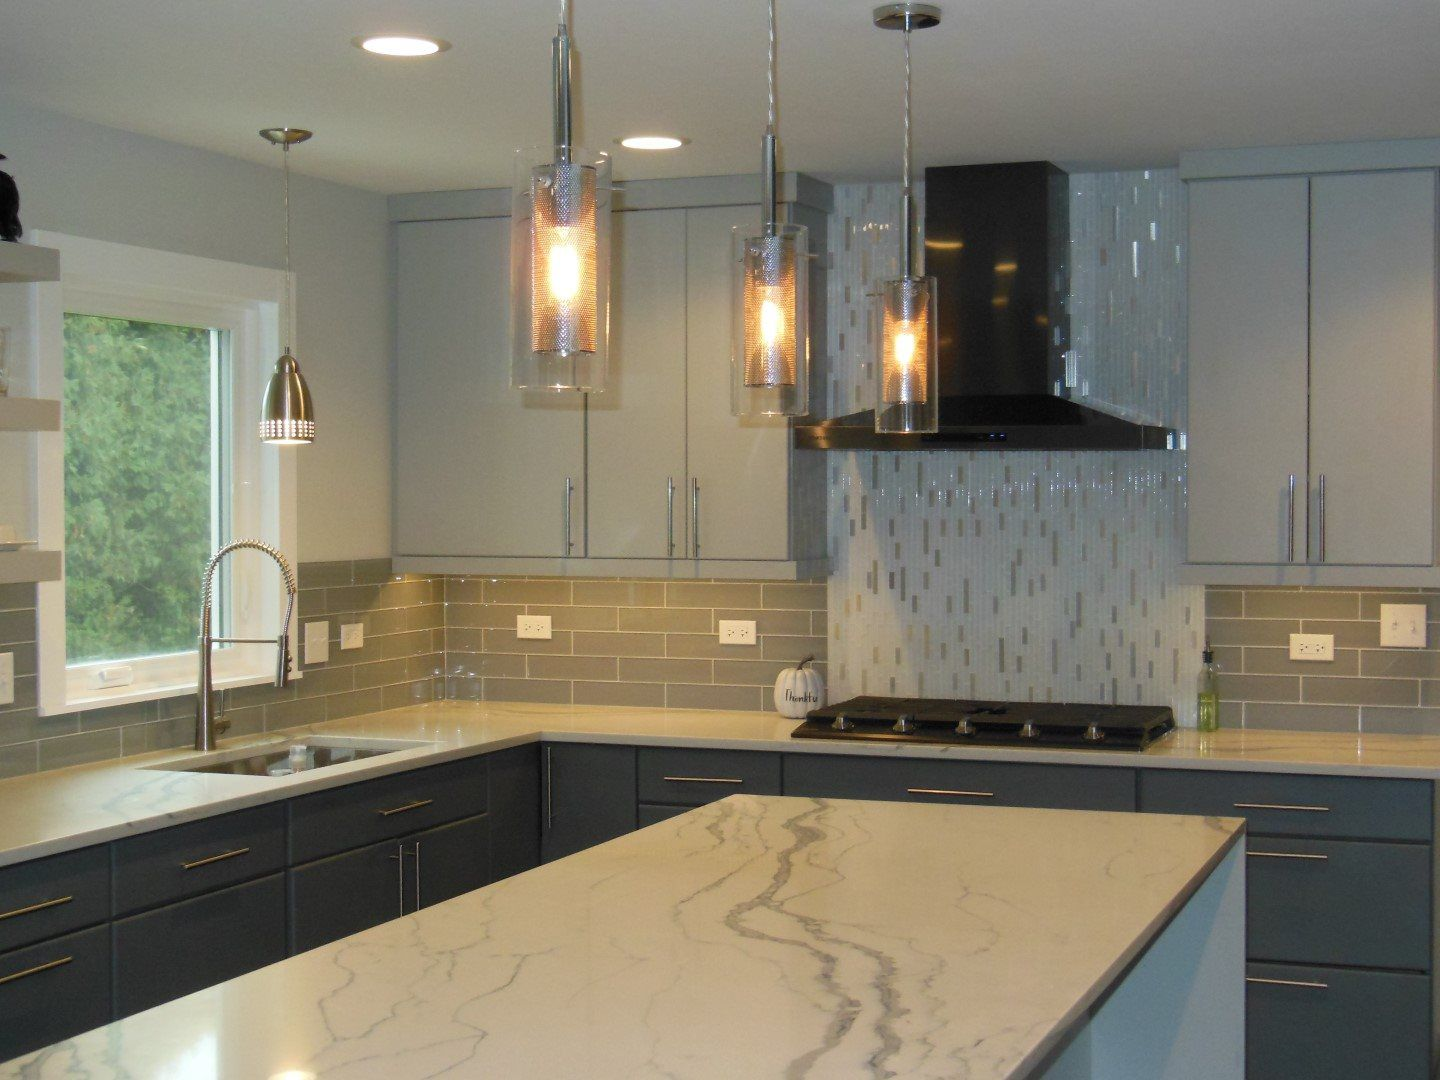 Skitchen Remodeling St Charles I Naperville Il I Legacy